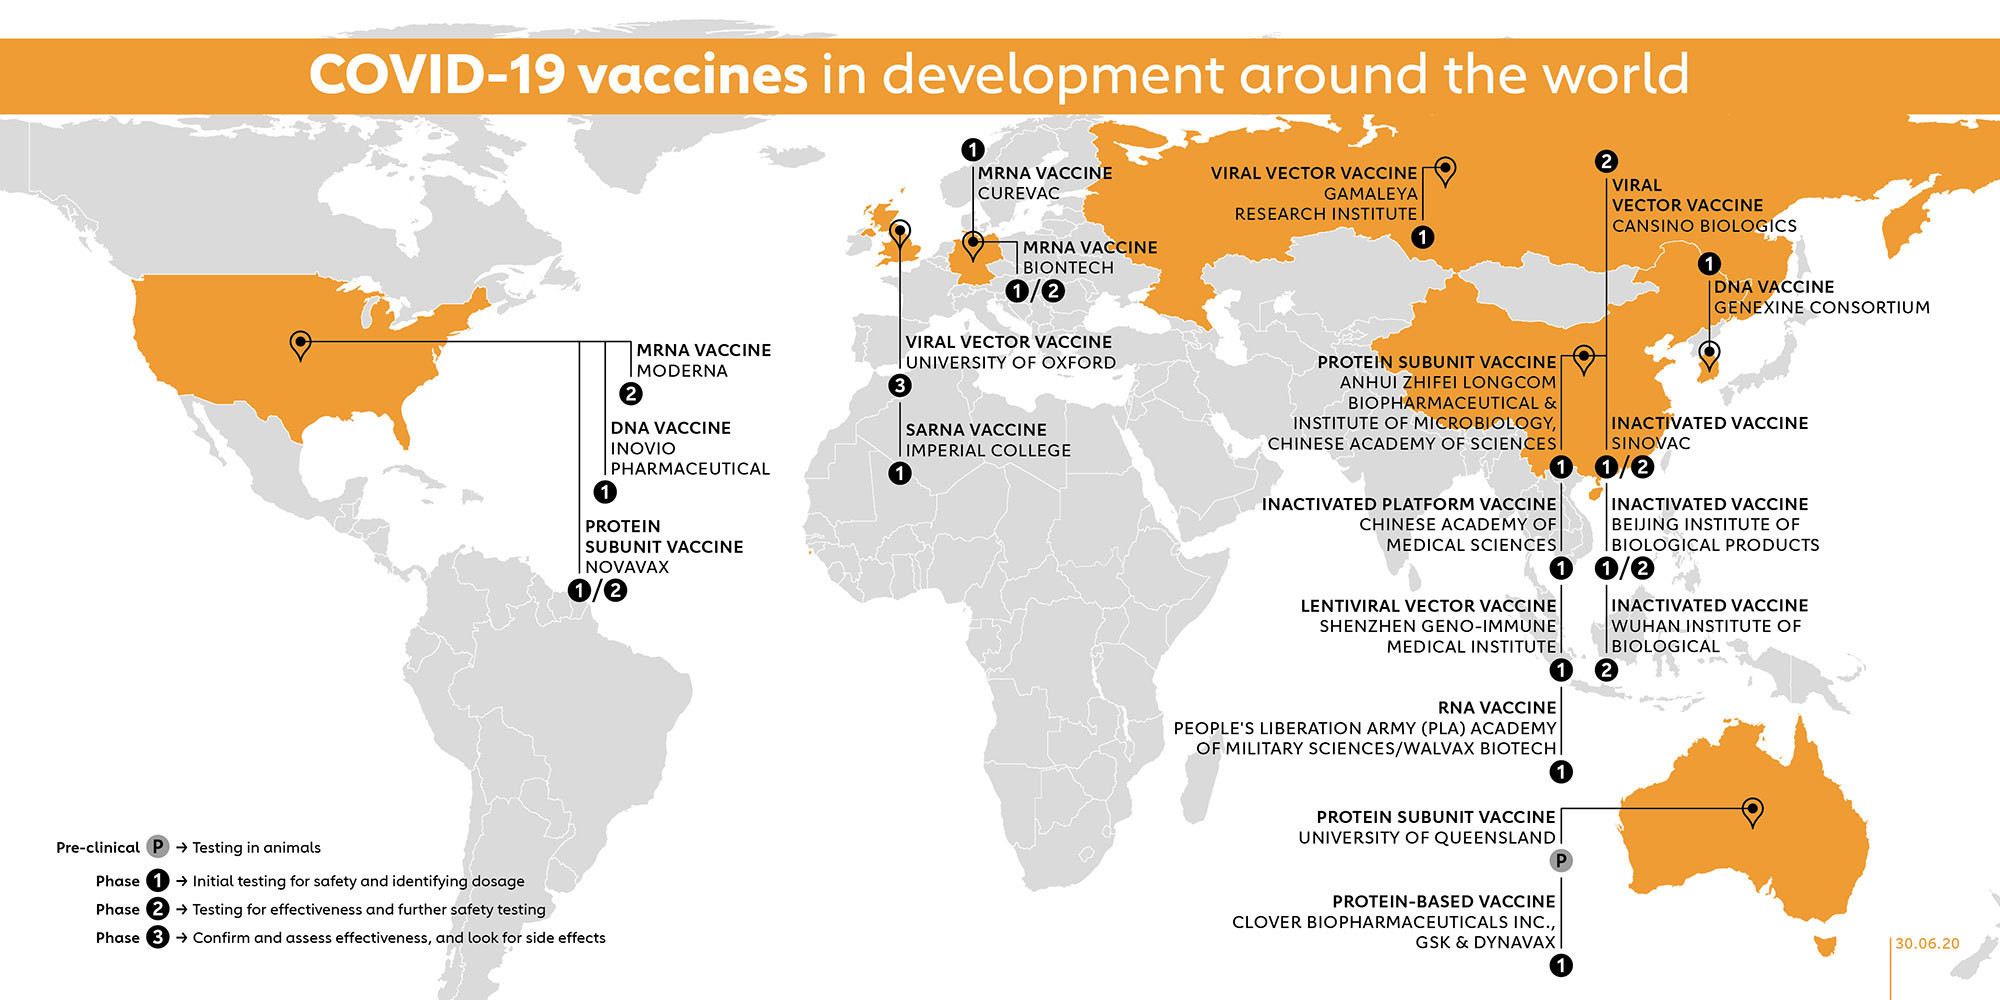 Globally, around 20 coronavirus vaccines are at the clinical trial stage.